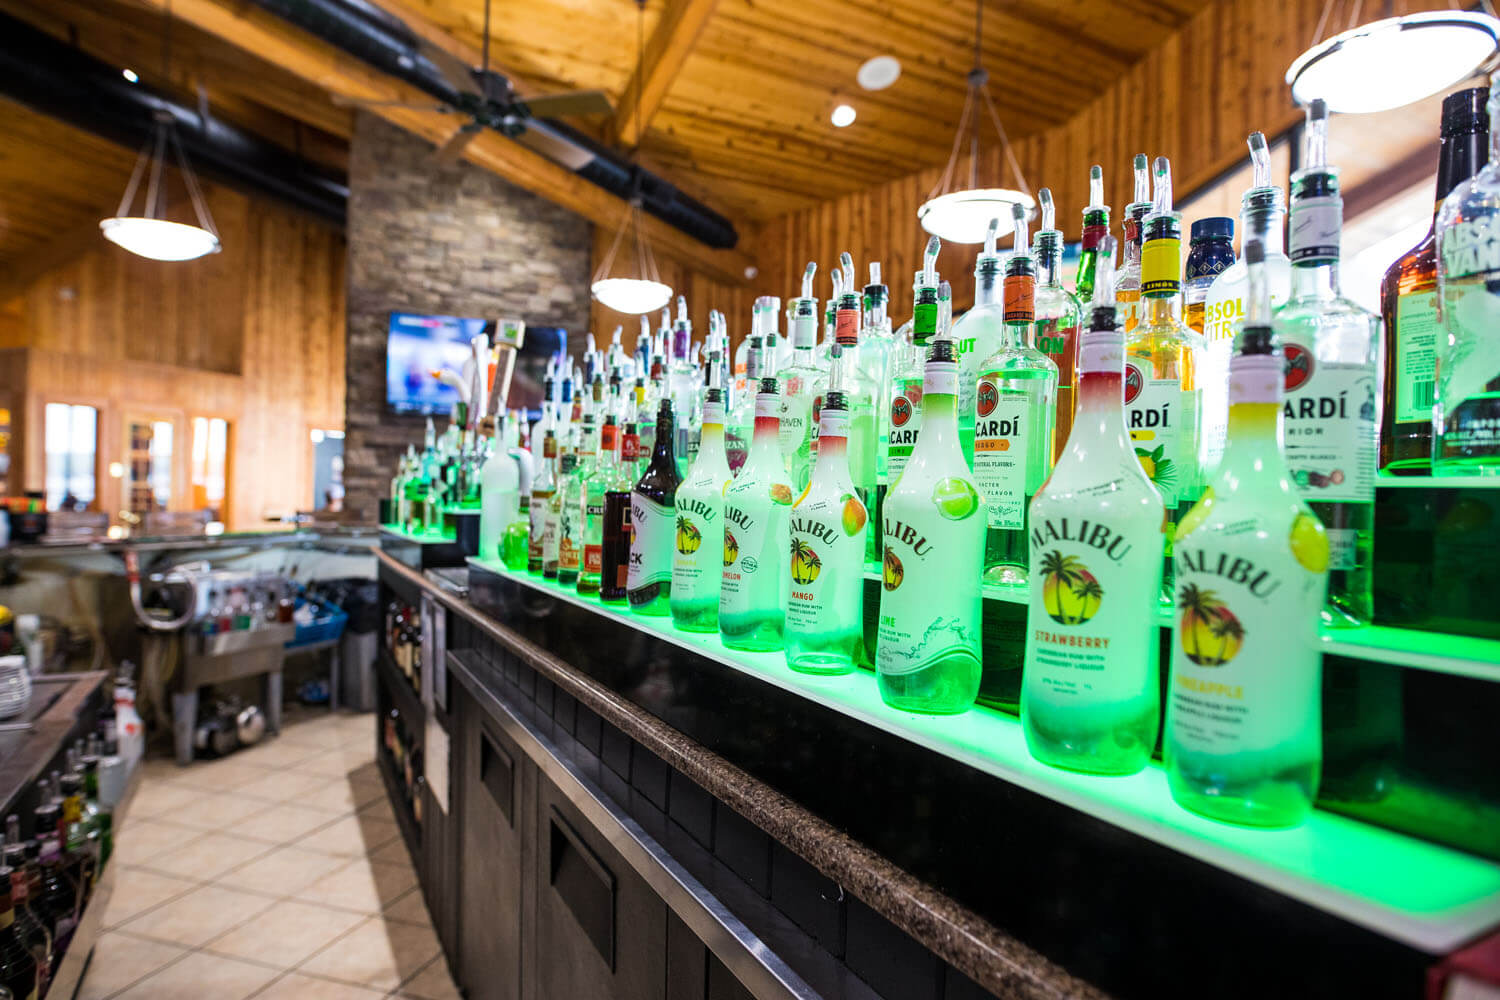 Shelves filled with alcohol bottles, featuring flavored Malibu rums in the front at Toad Island Bar & Grill Camden on the Lake